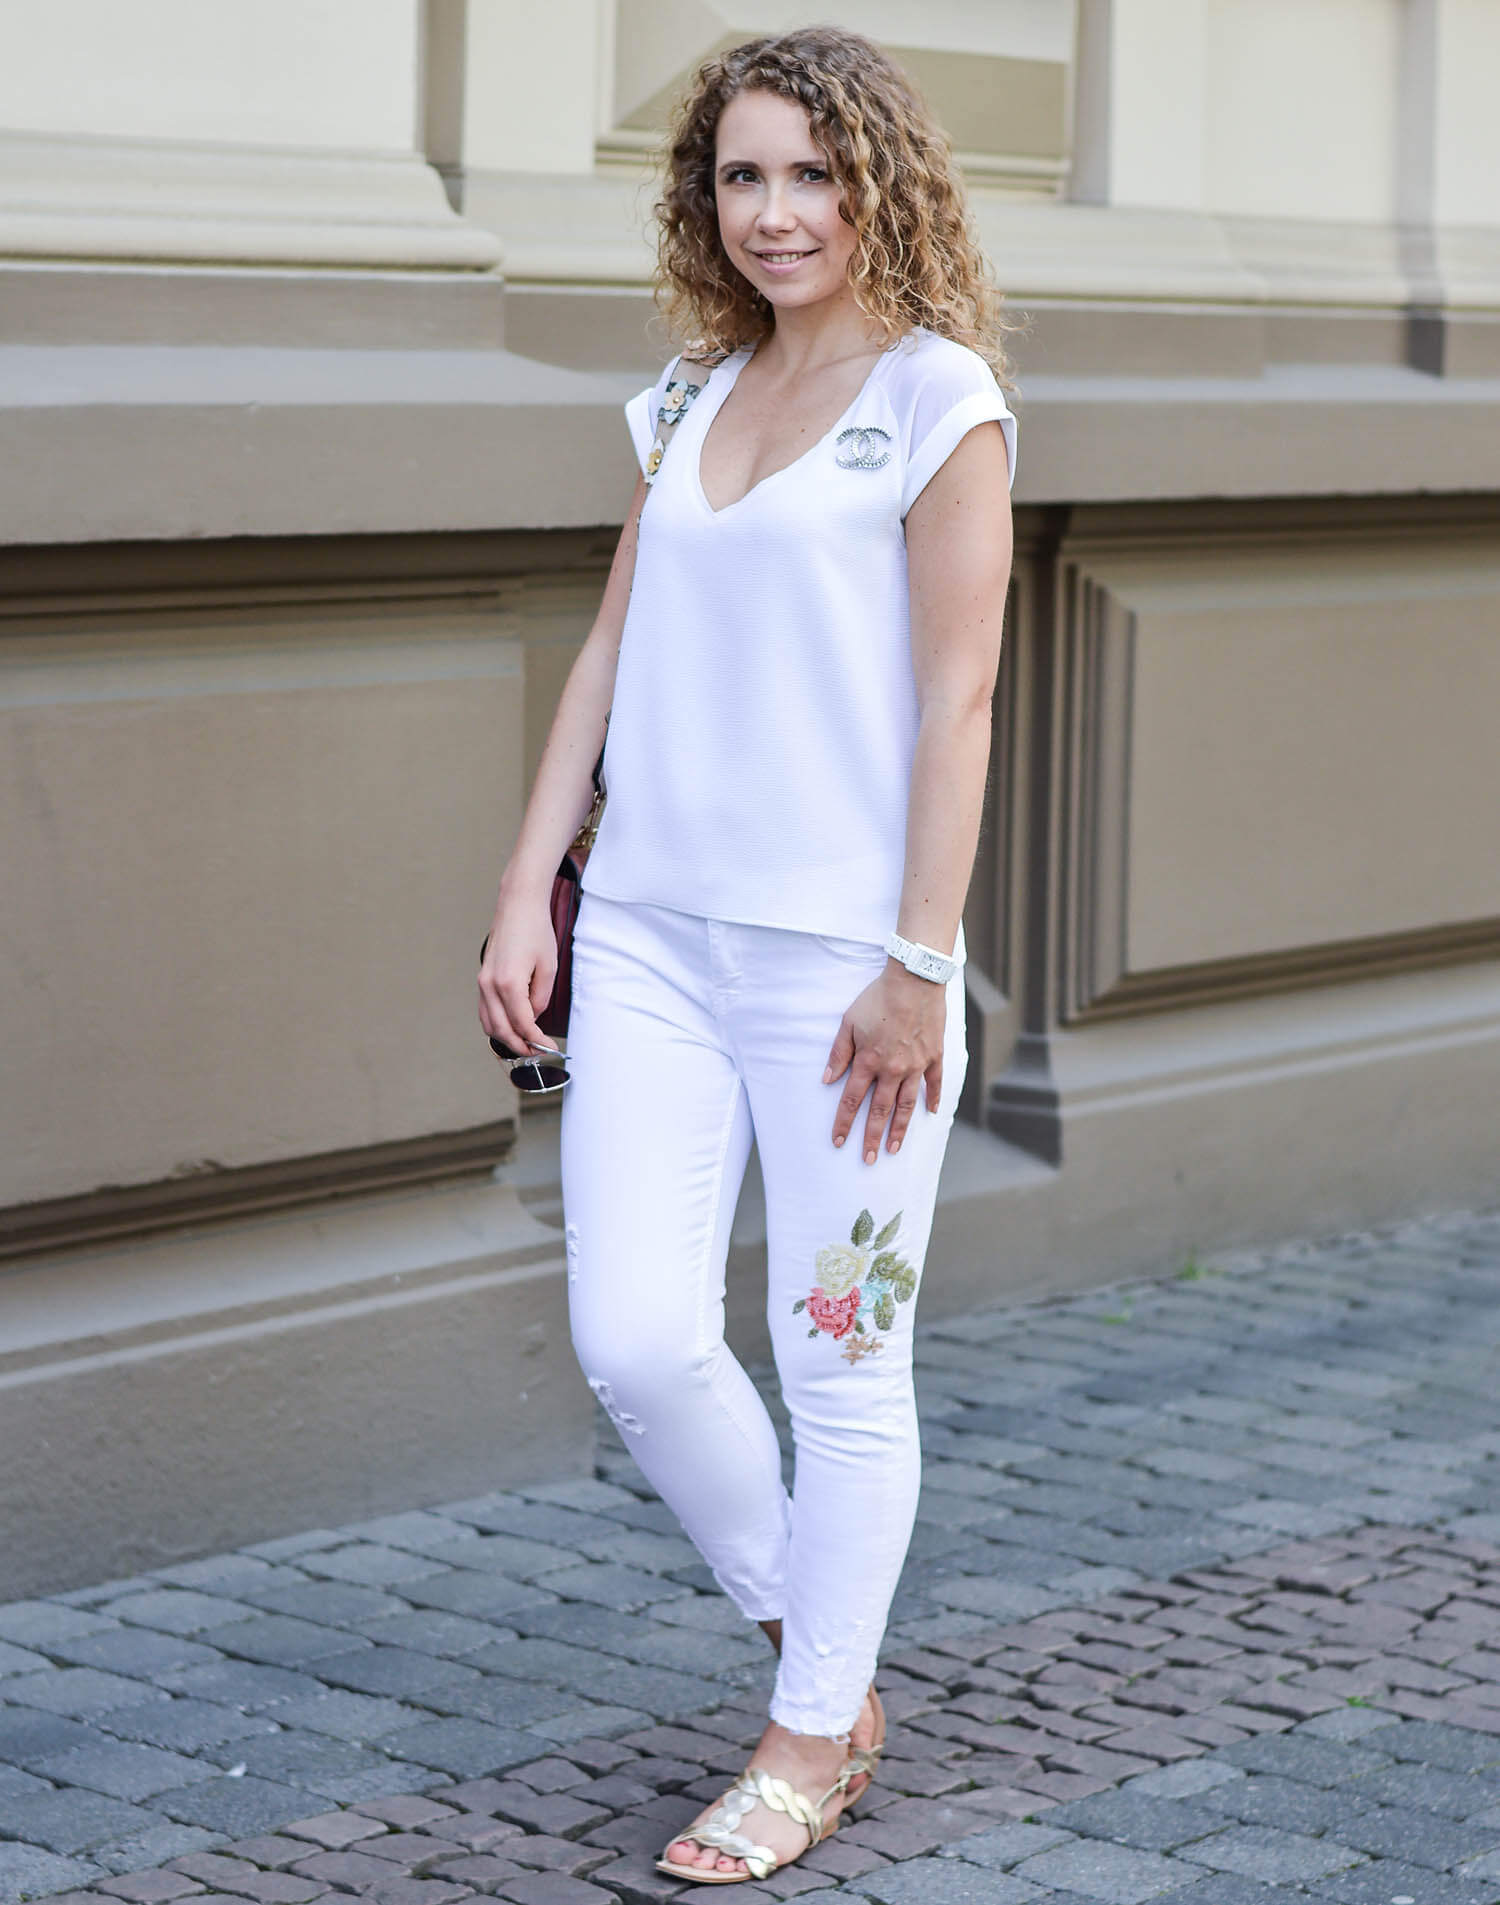 kationette-fashionblog-nrw-Outfit-Allwhite-Embroidery-Michael-Kors-Shoulder-Strap-streetstyle